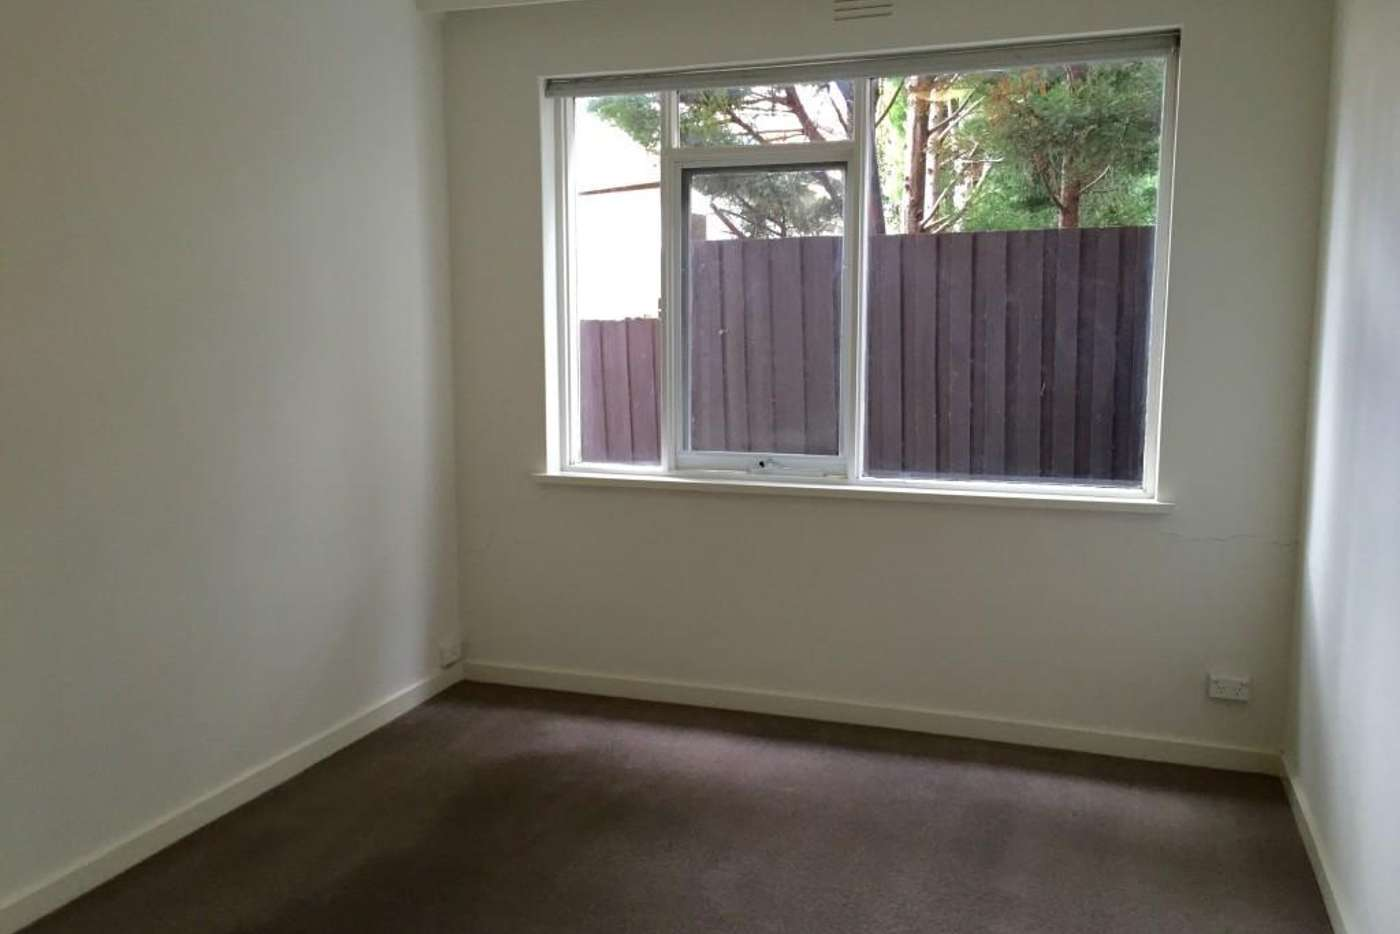 Sixth view of Homely apartment listing, 5/30 Allison Road, Elsternwick VIC 3185